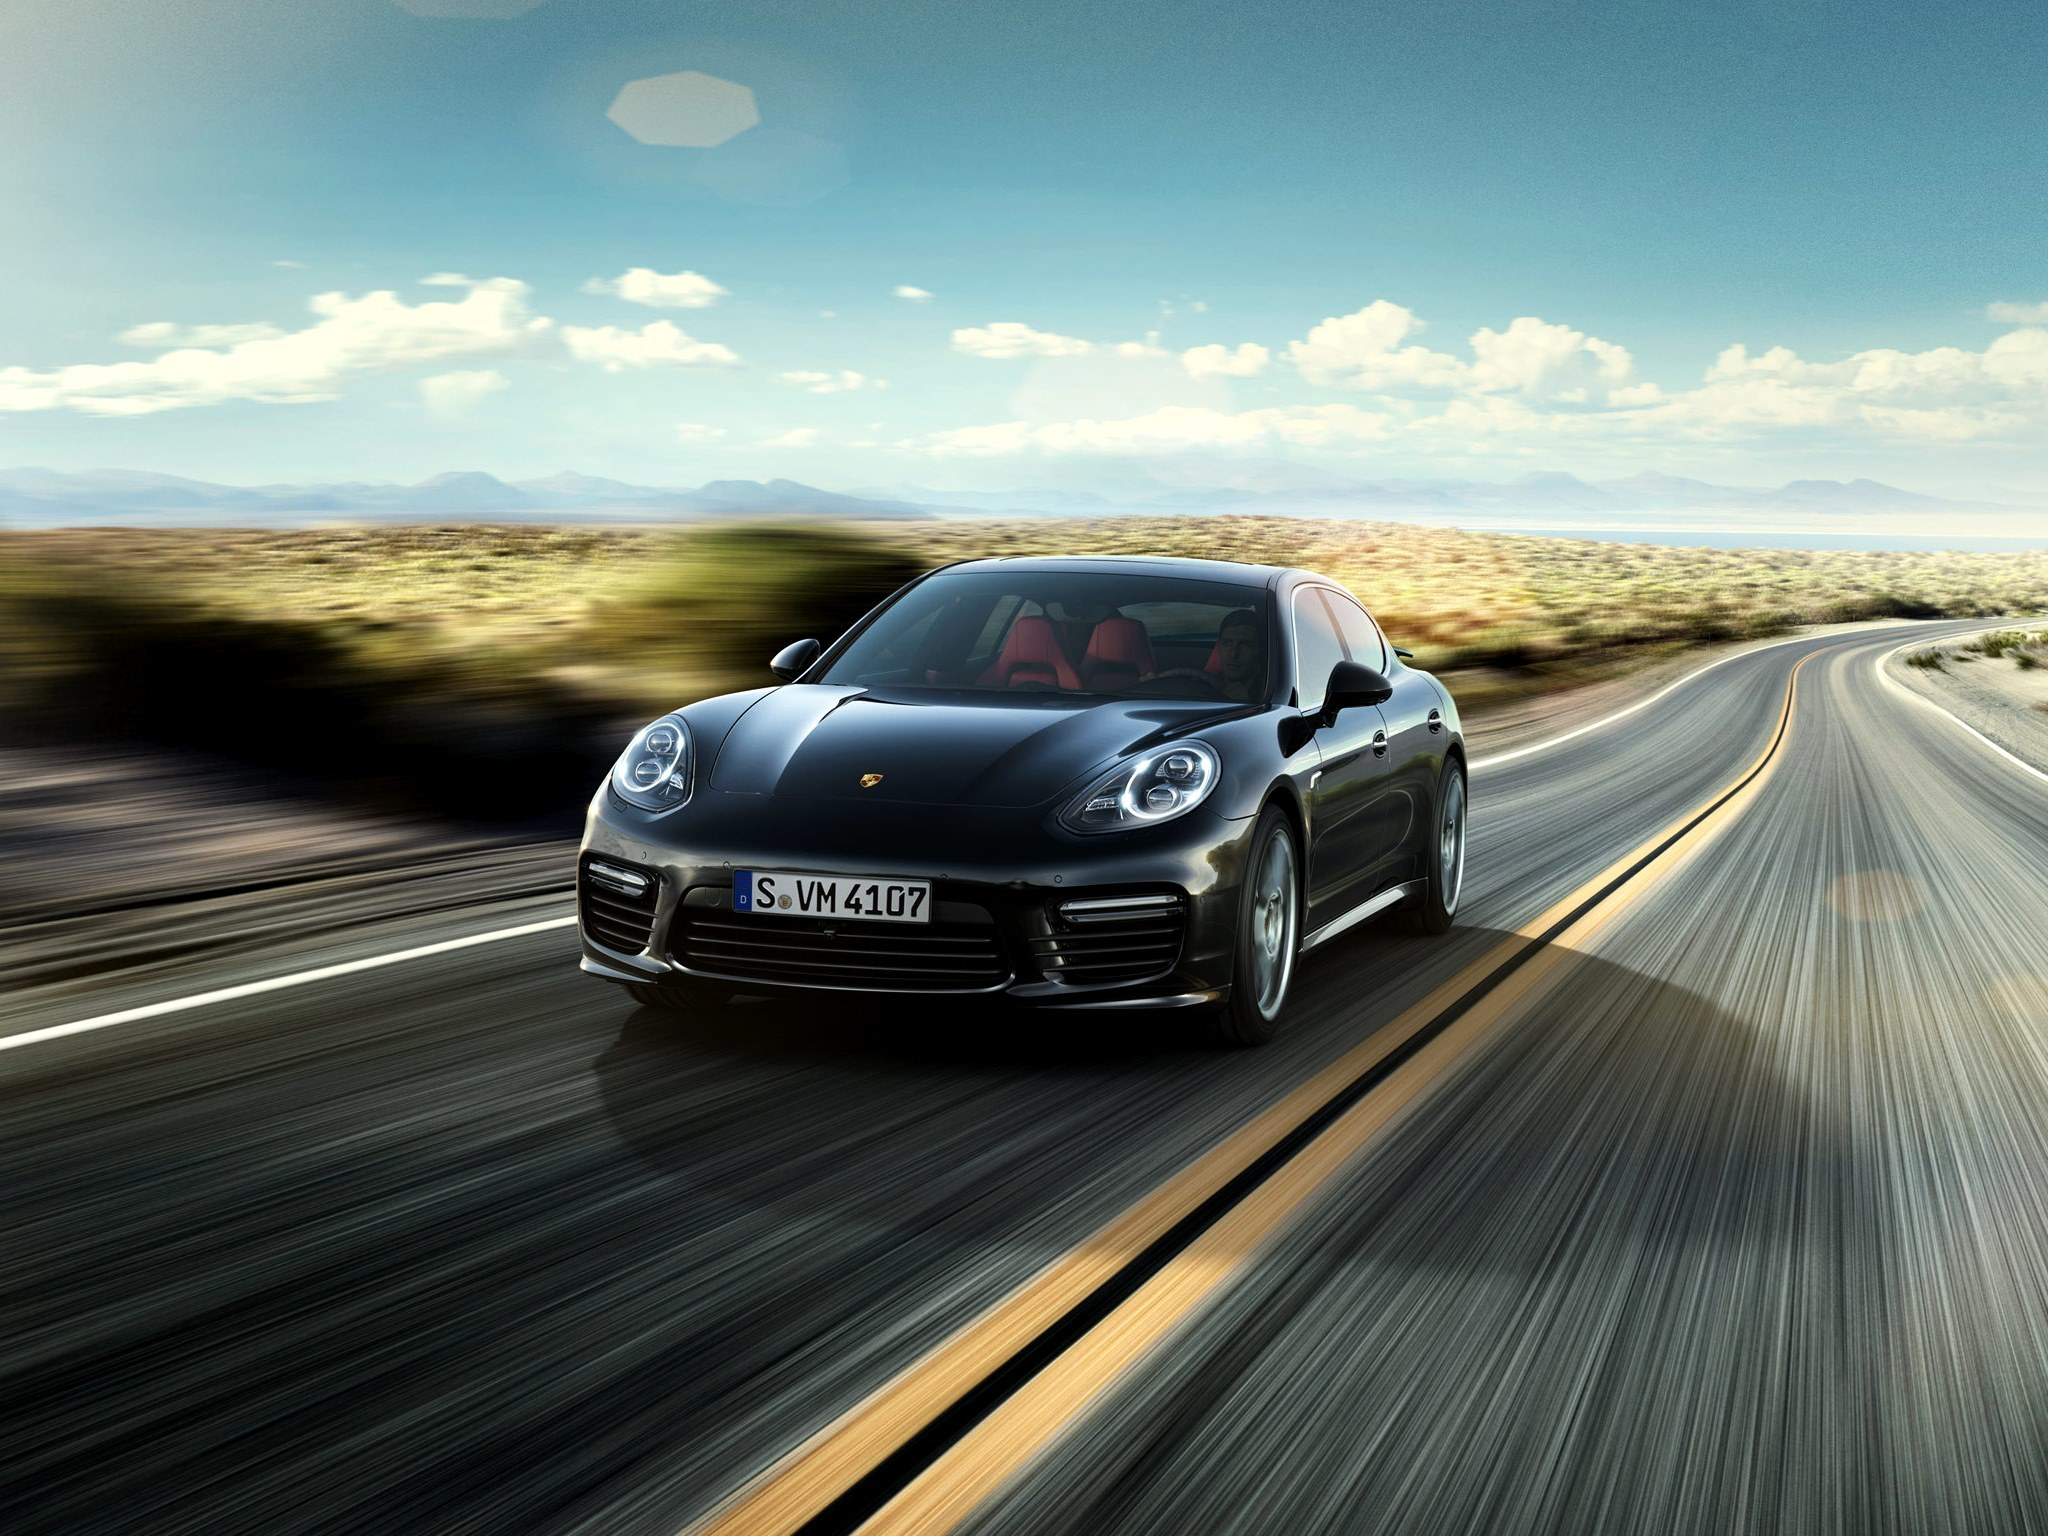 Porsche Hd Wallpapers 1080p: Porsche Panamera Wallpapers, Pictures, Images